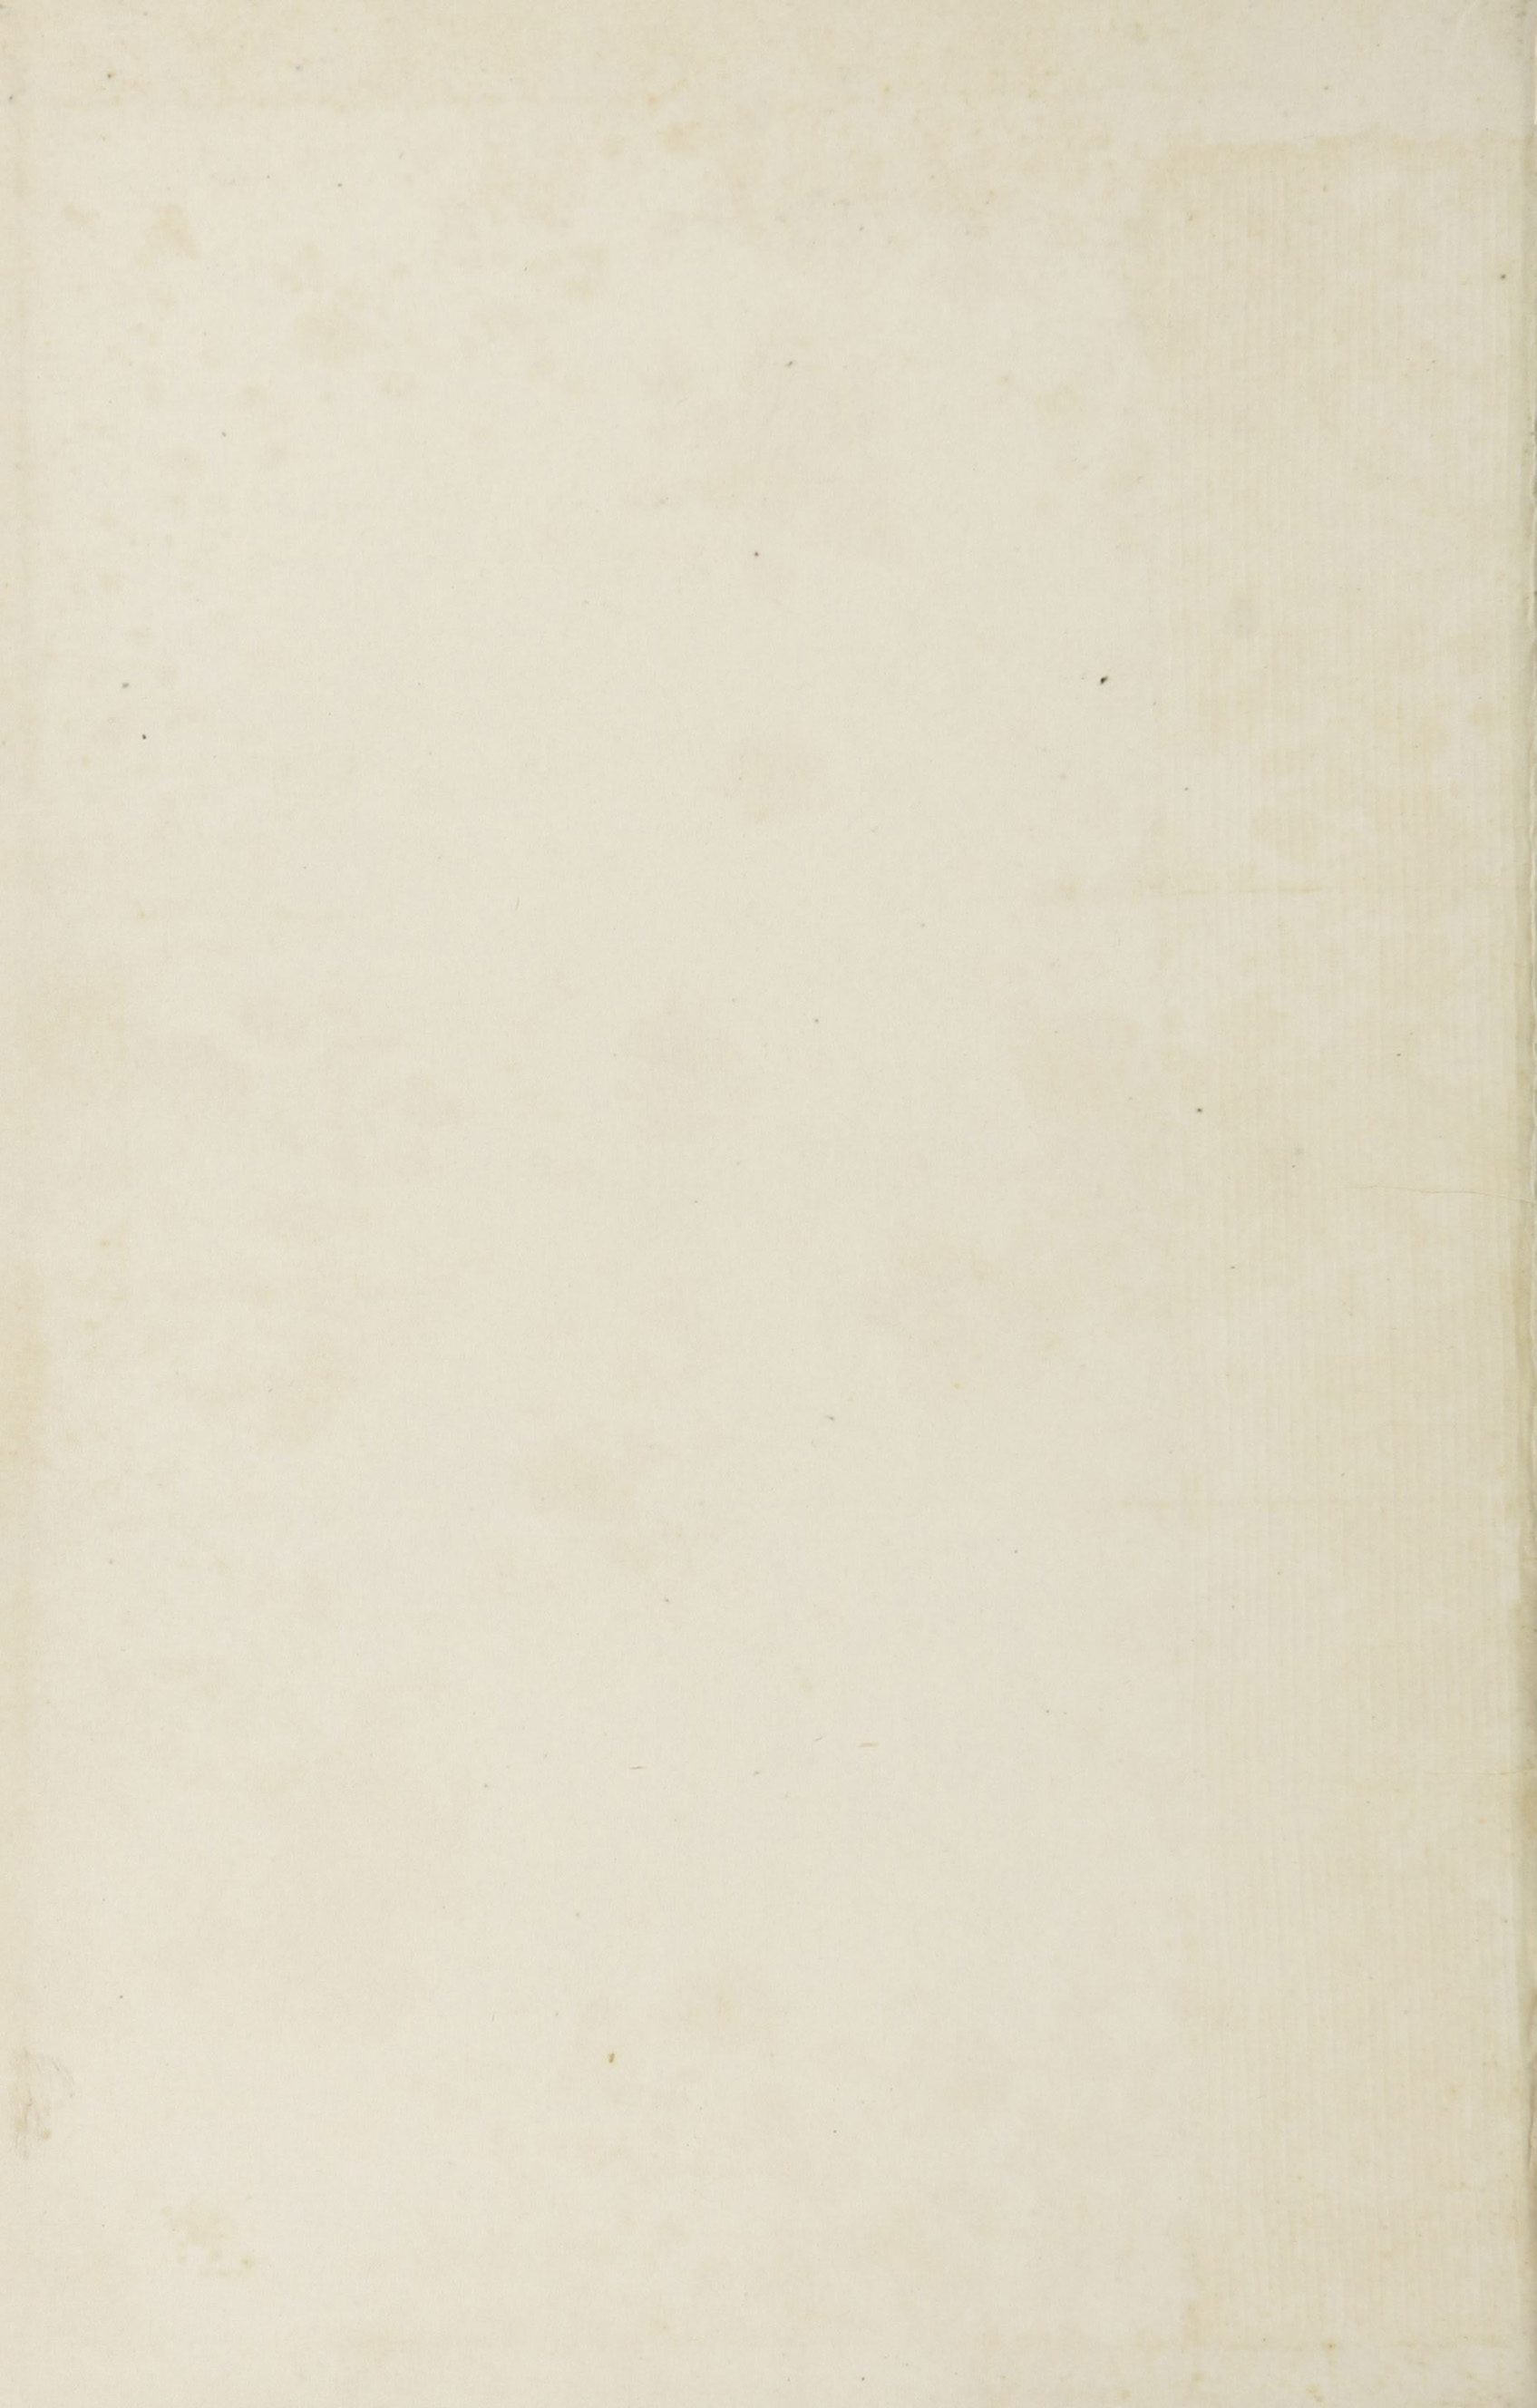 Charleston Yearbook, 1922, inside cover